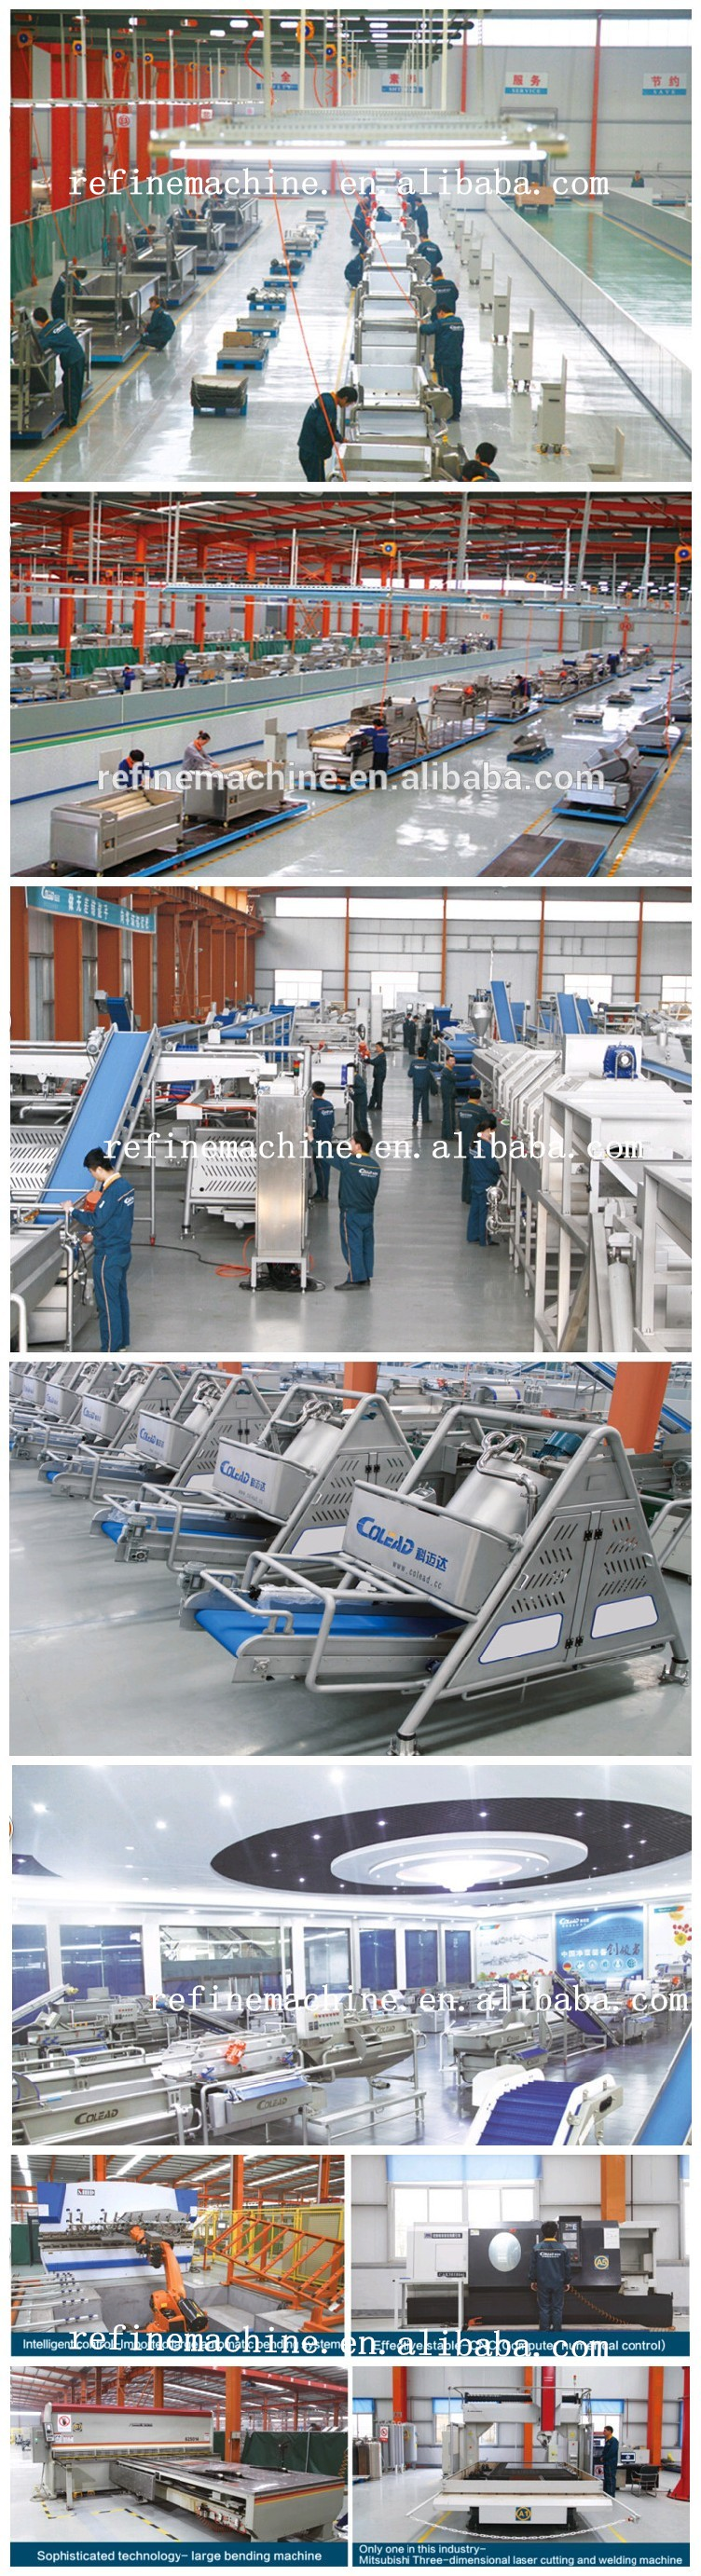 Hot sales commercial leaf vegetable washer from Shandong Colead